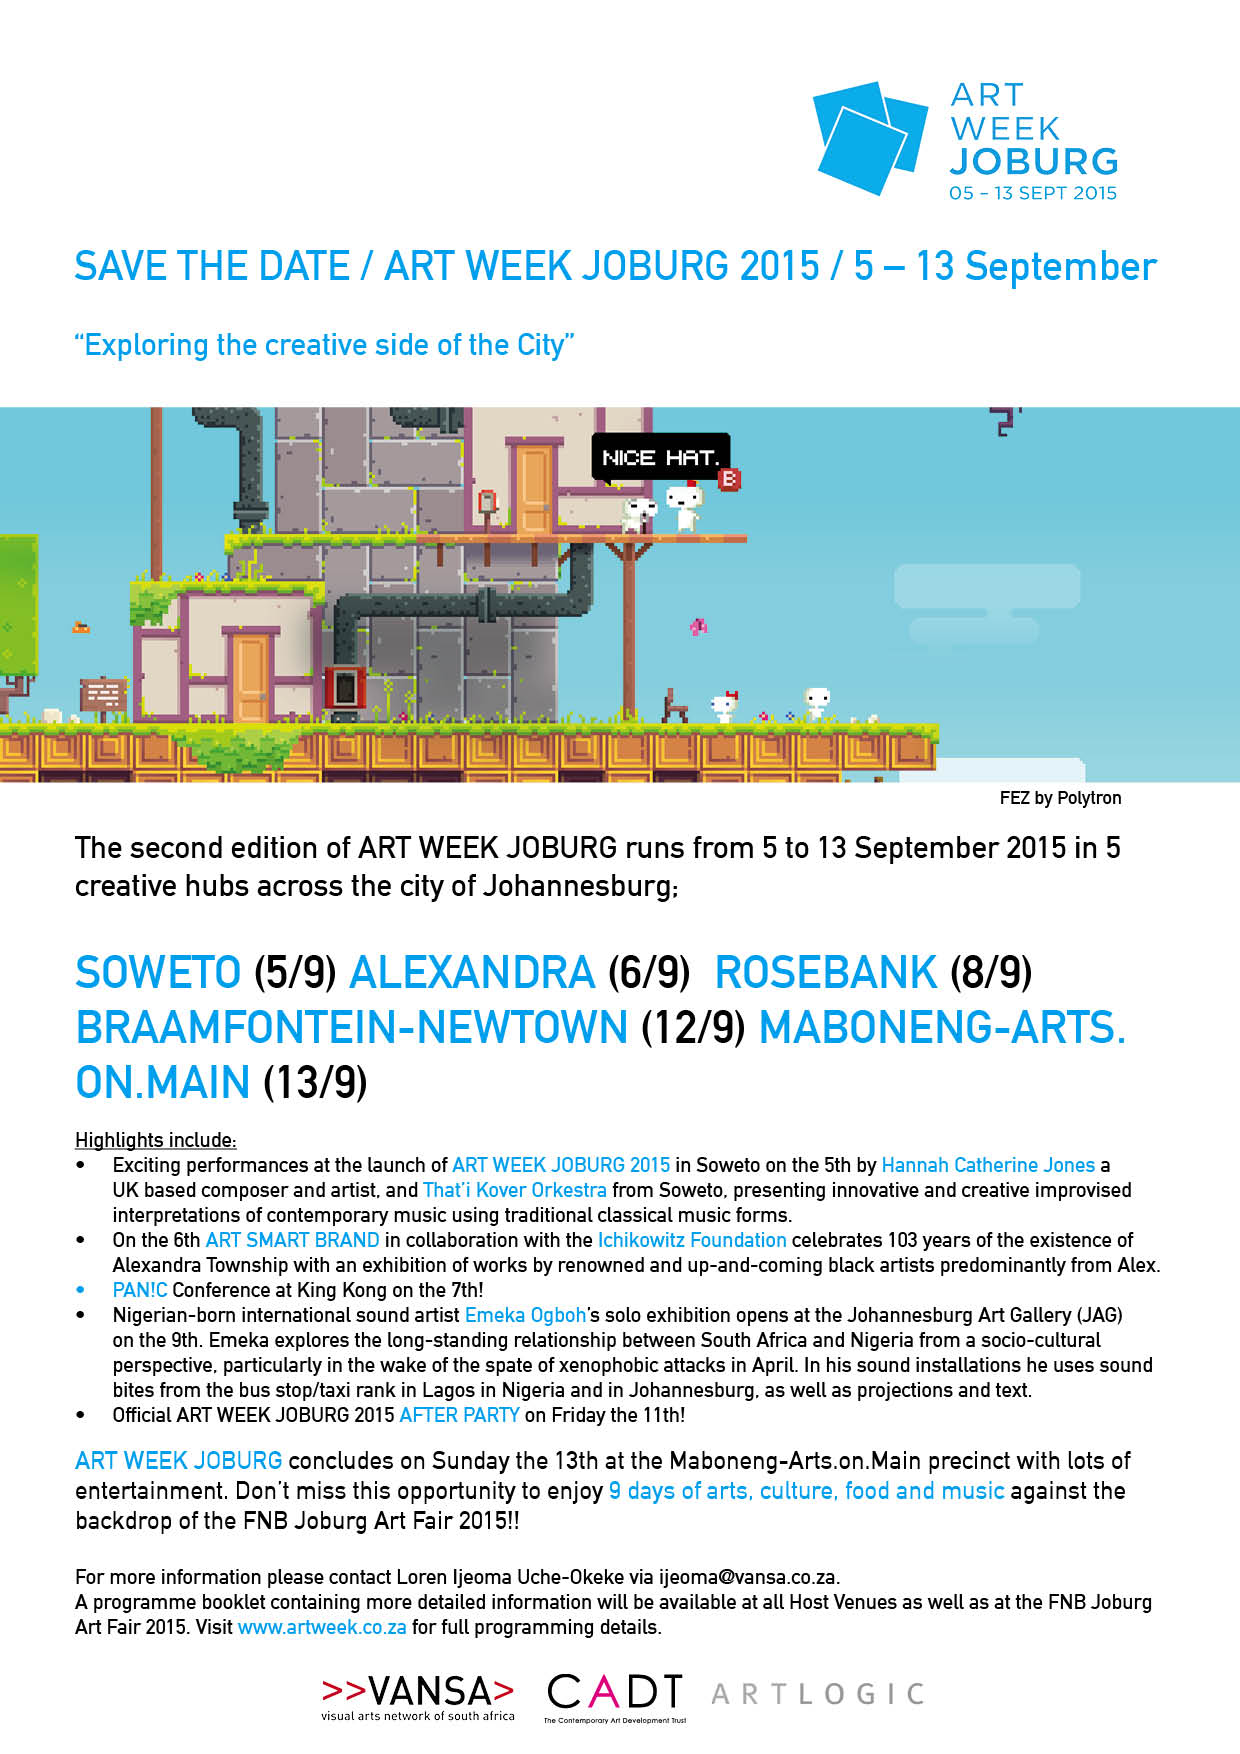 AWJ2015_save the date